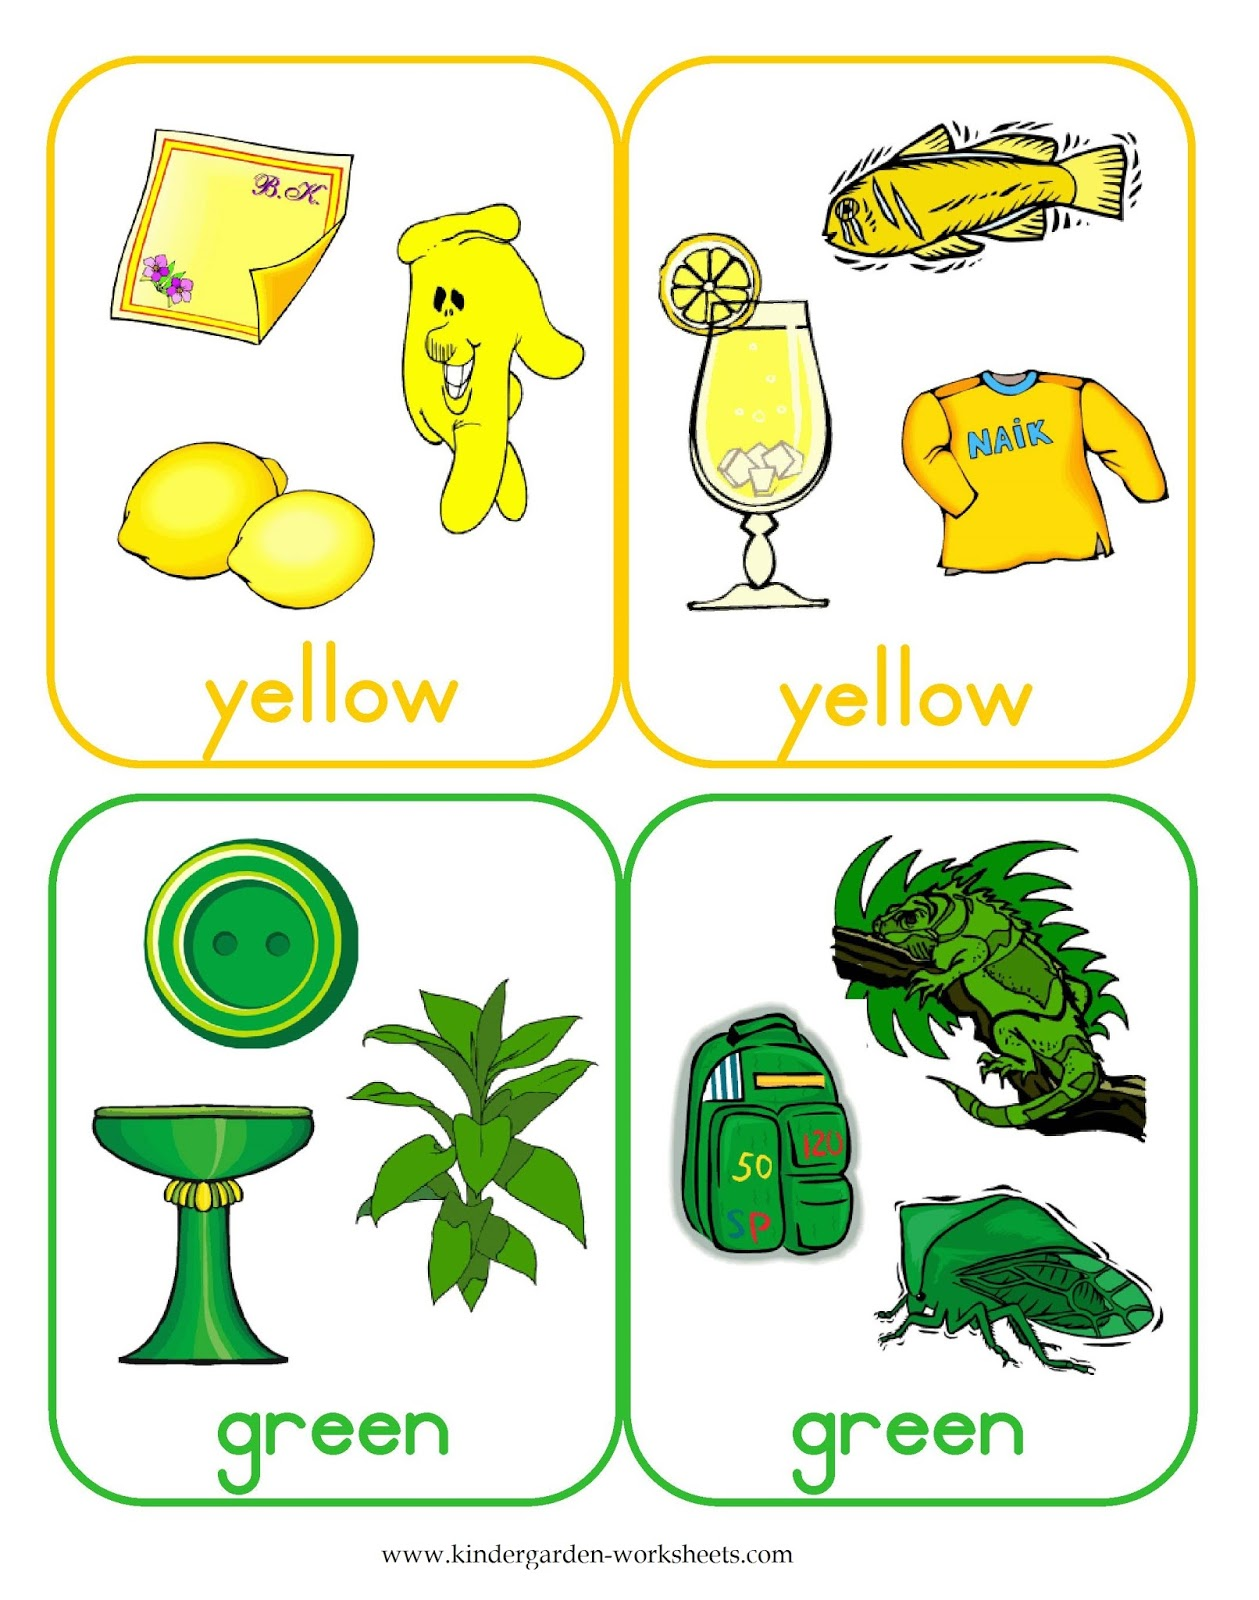 Kindergarten Worksheets Flashcards